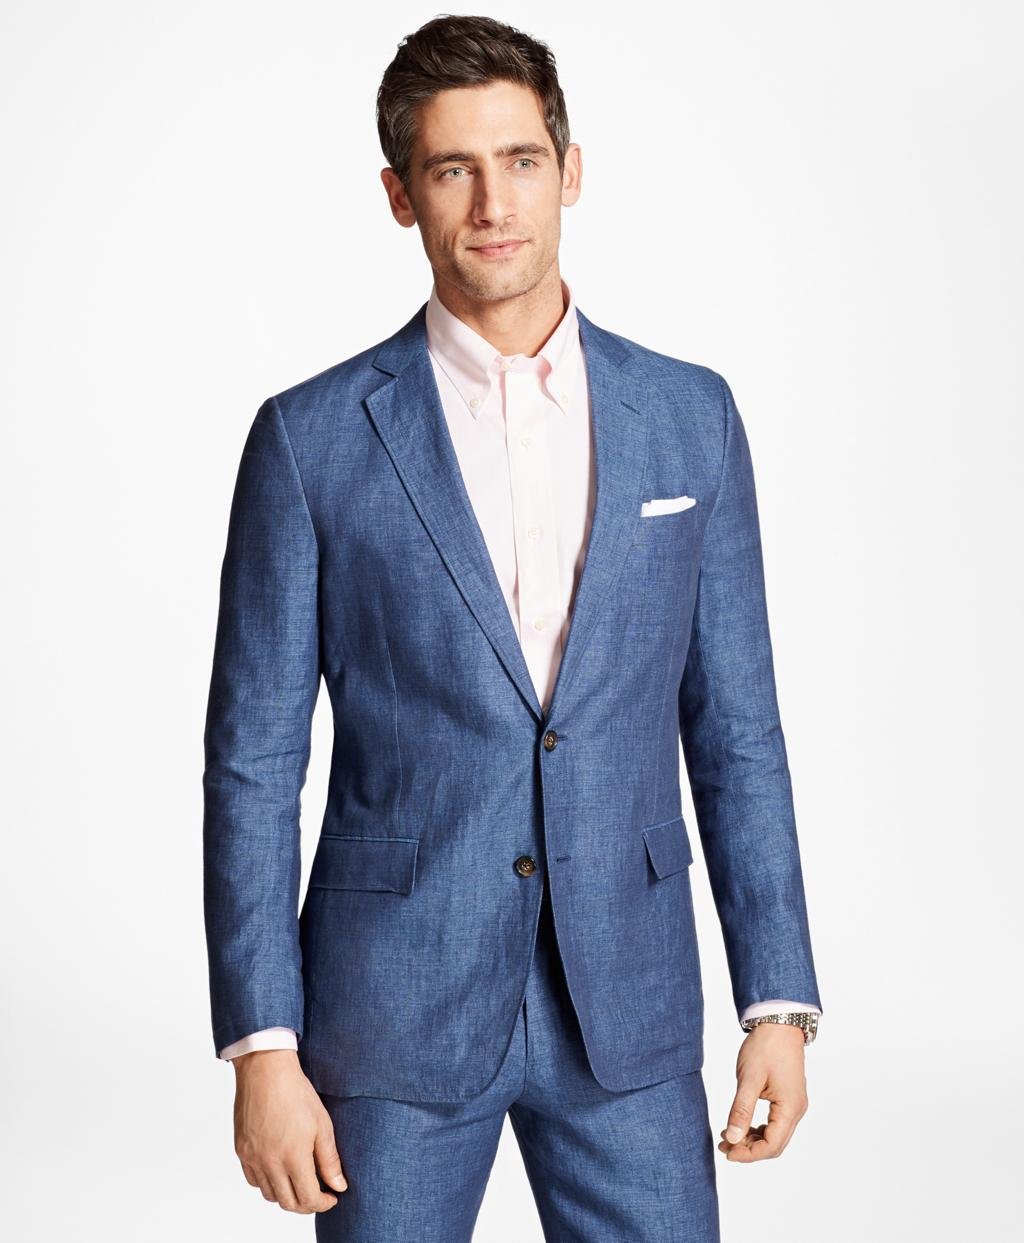 Remember, it is very rare to buy a sport coat off the rack and have a perfect fit. Now that you know how a sport coat should fit, head out and find one to add to your wardrobe. There are many patterns and fabrics to choose from, so be creative and get a versatile piece so you can wear it many times over.